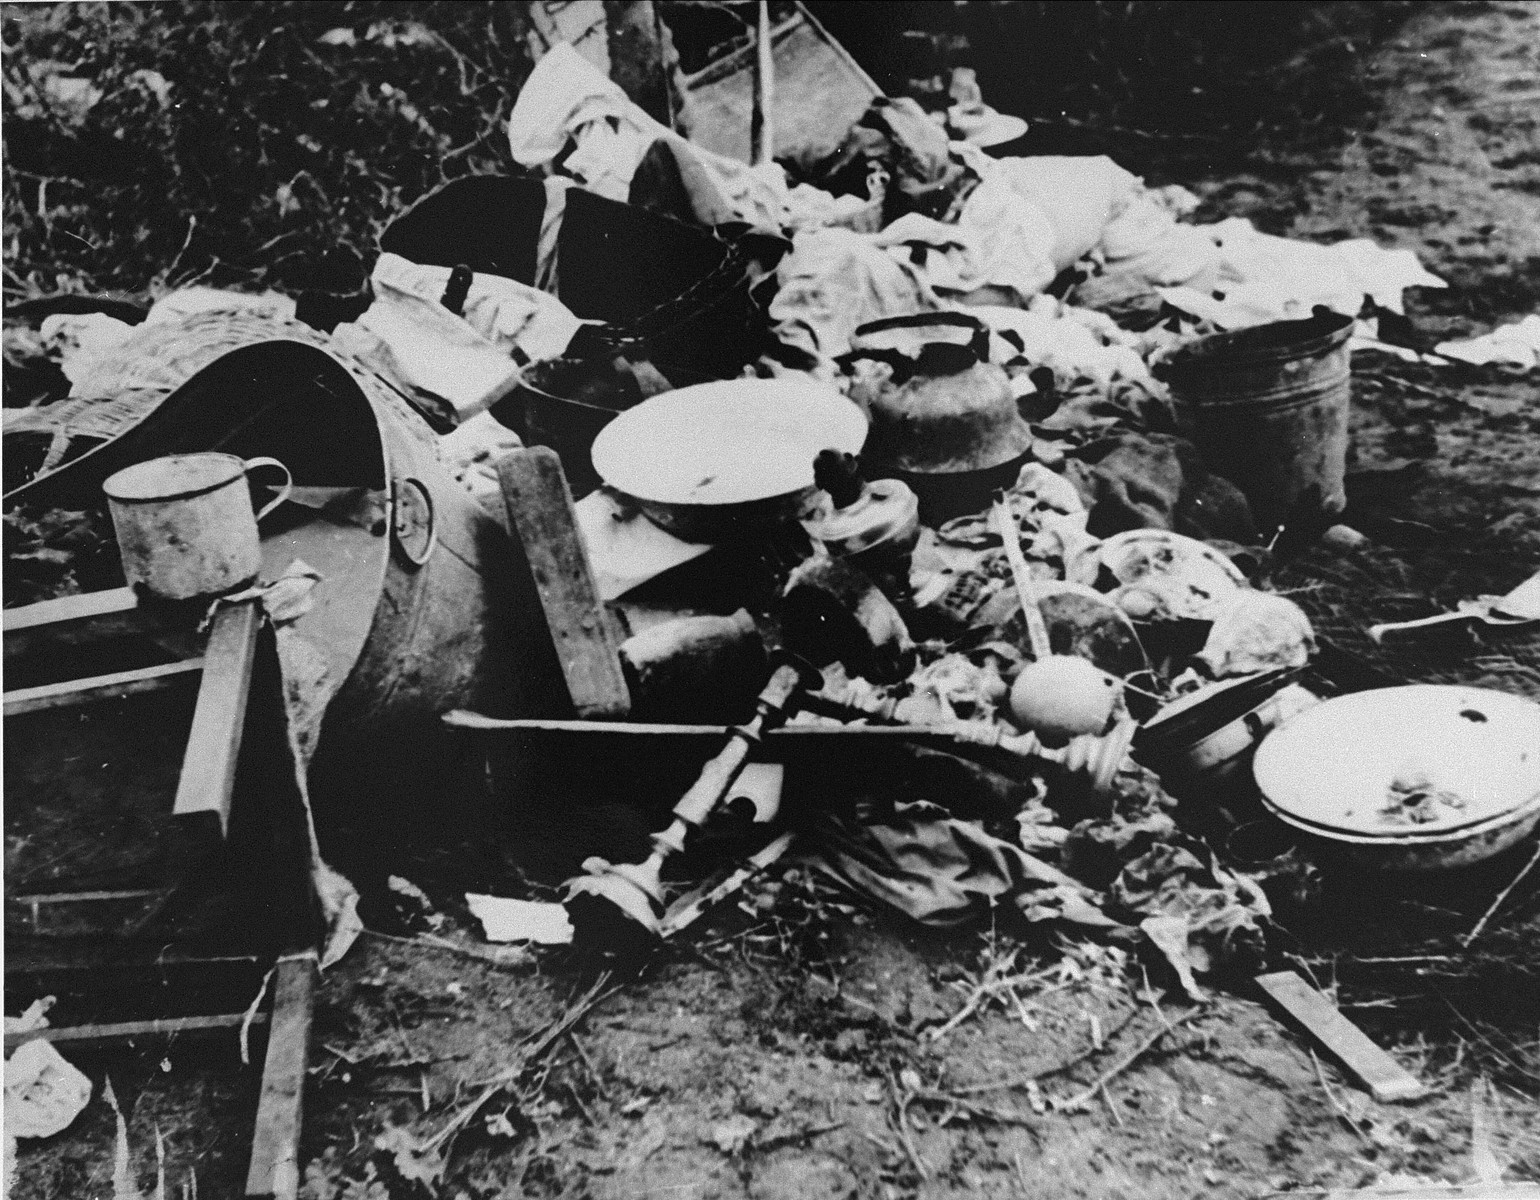 Property from synagogues and homes vandalized by the Lithuanians during the June, 1941 pogrom in Kovno.